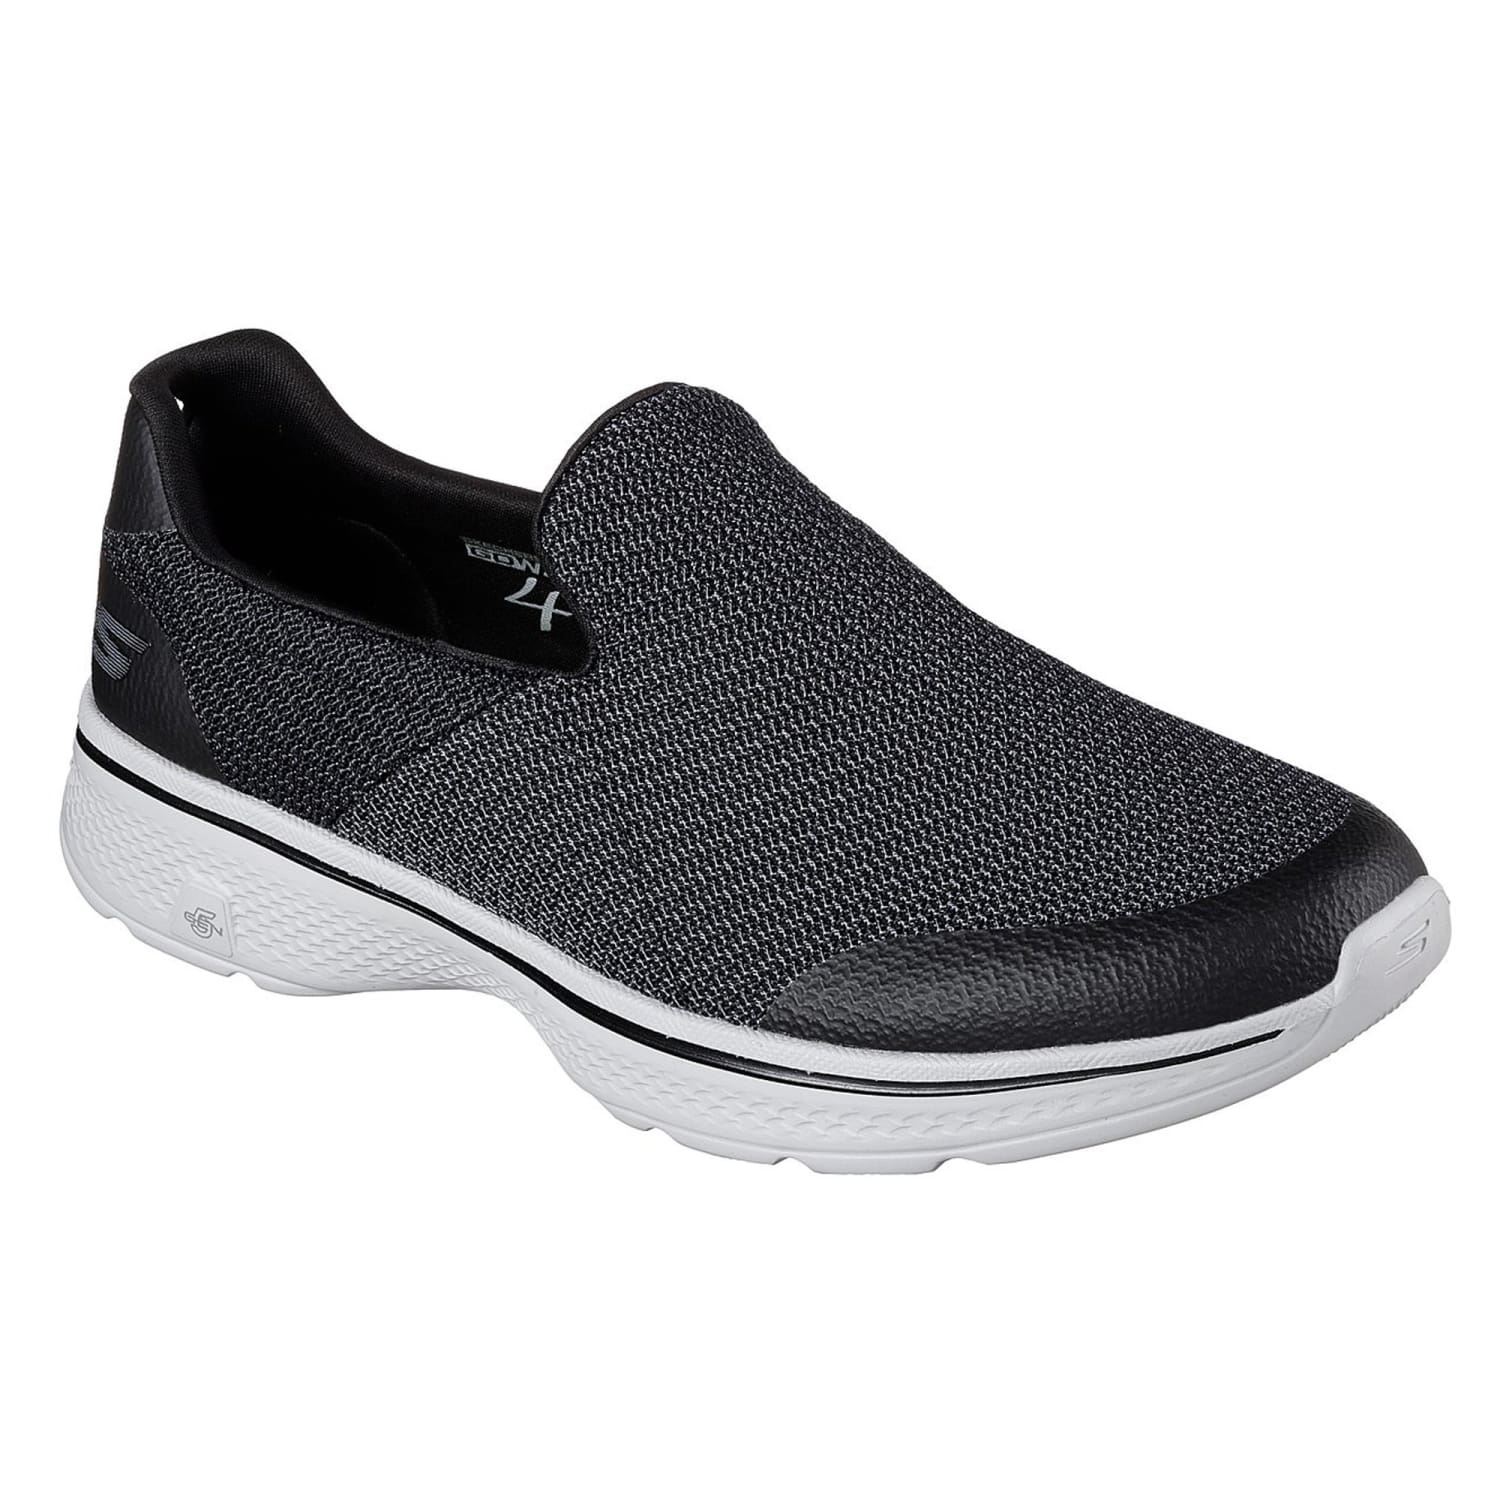 Skechers Trainers - 54155 - Expert - Black / Grey 1